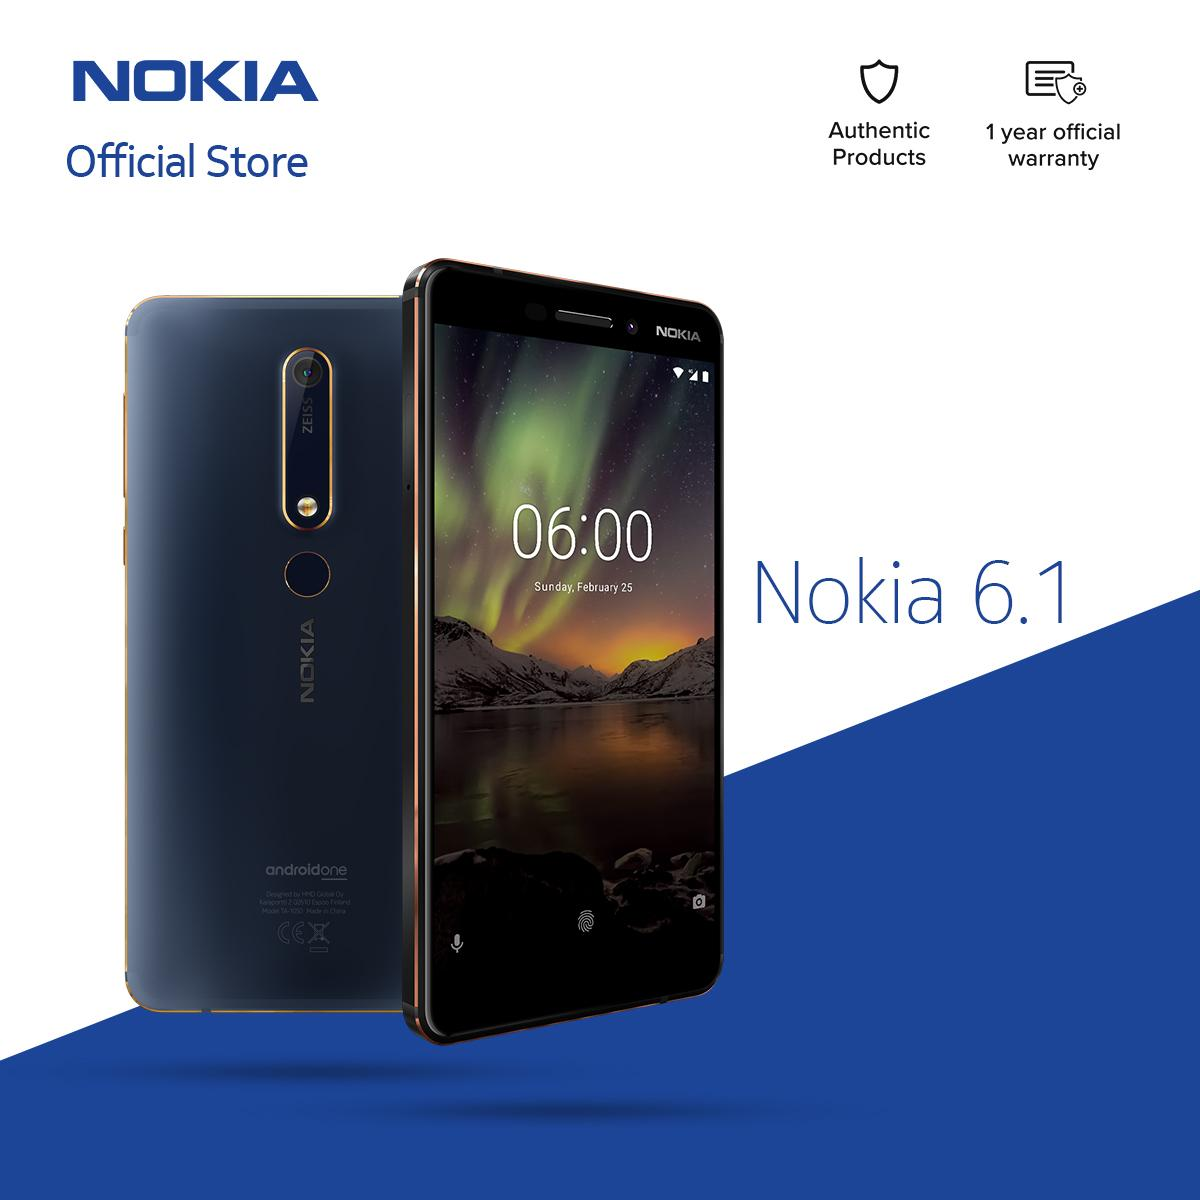 9e550a108 Nokia Phone for sale - Up to 60% off